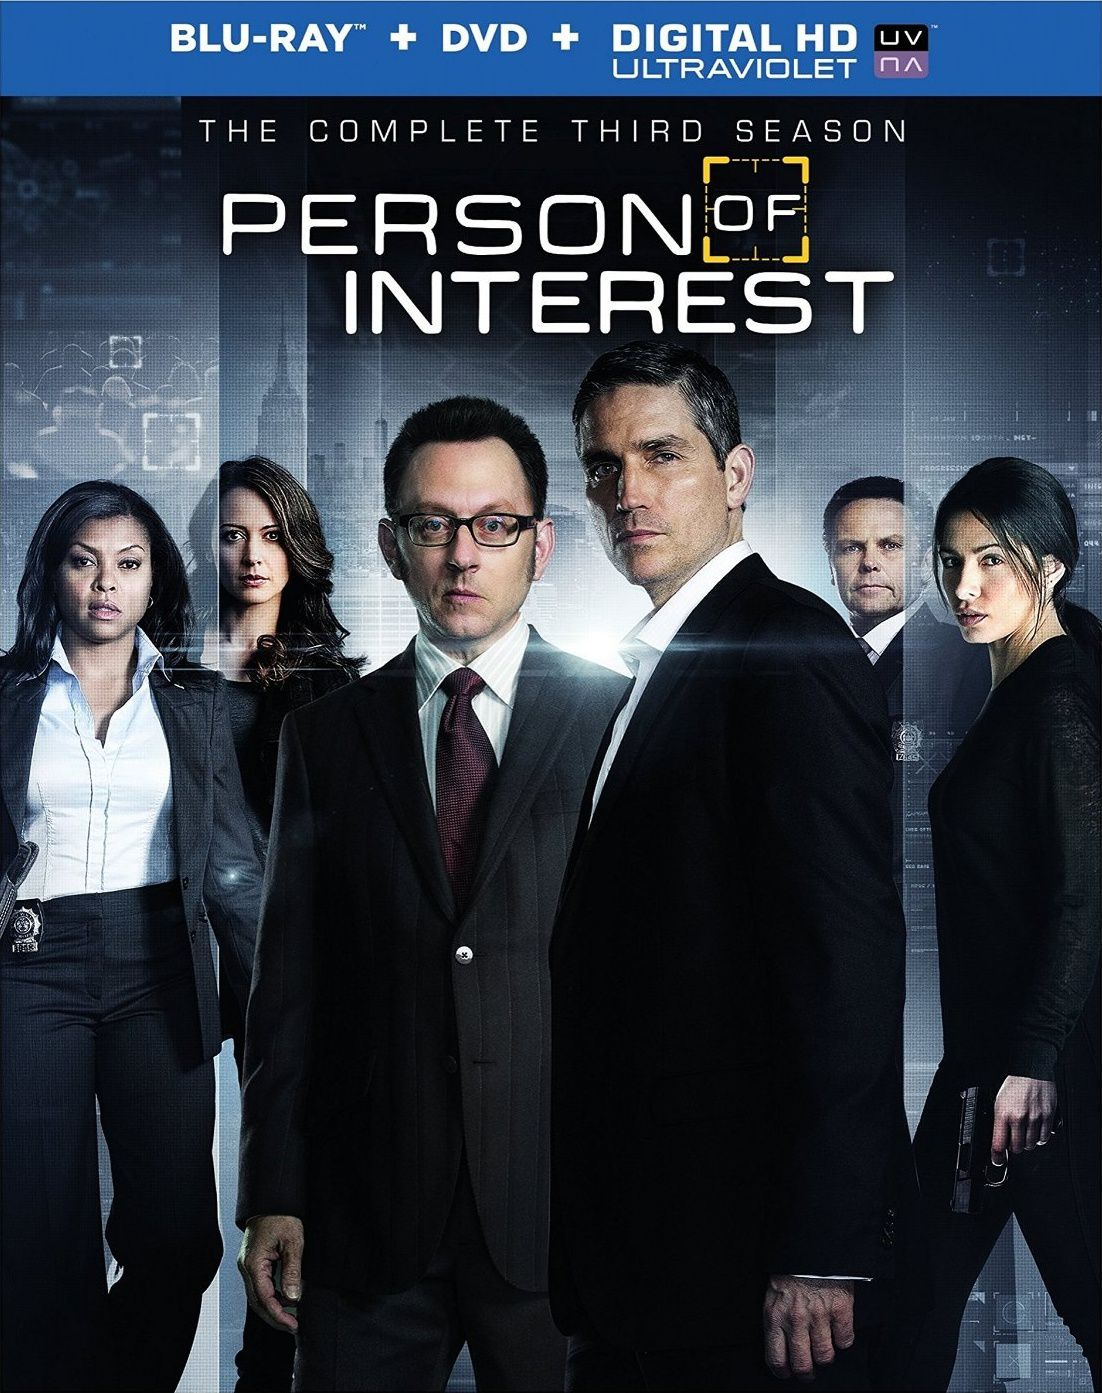 Person of interest saison 3 en dvd/blu-ray/digital ultraviolet